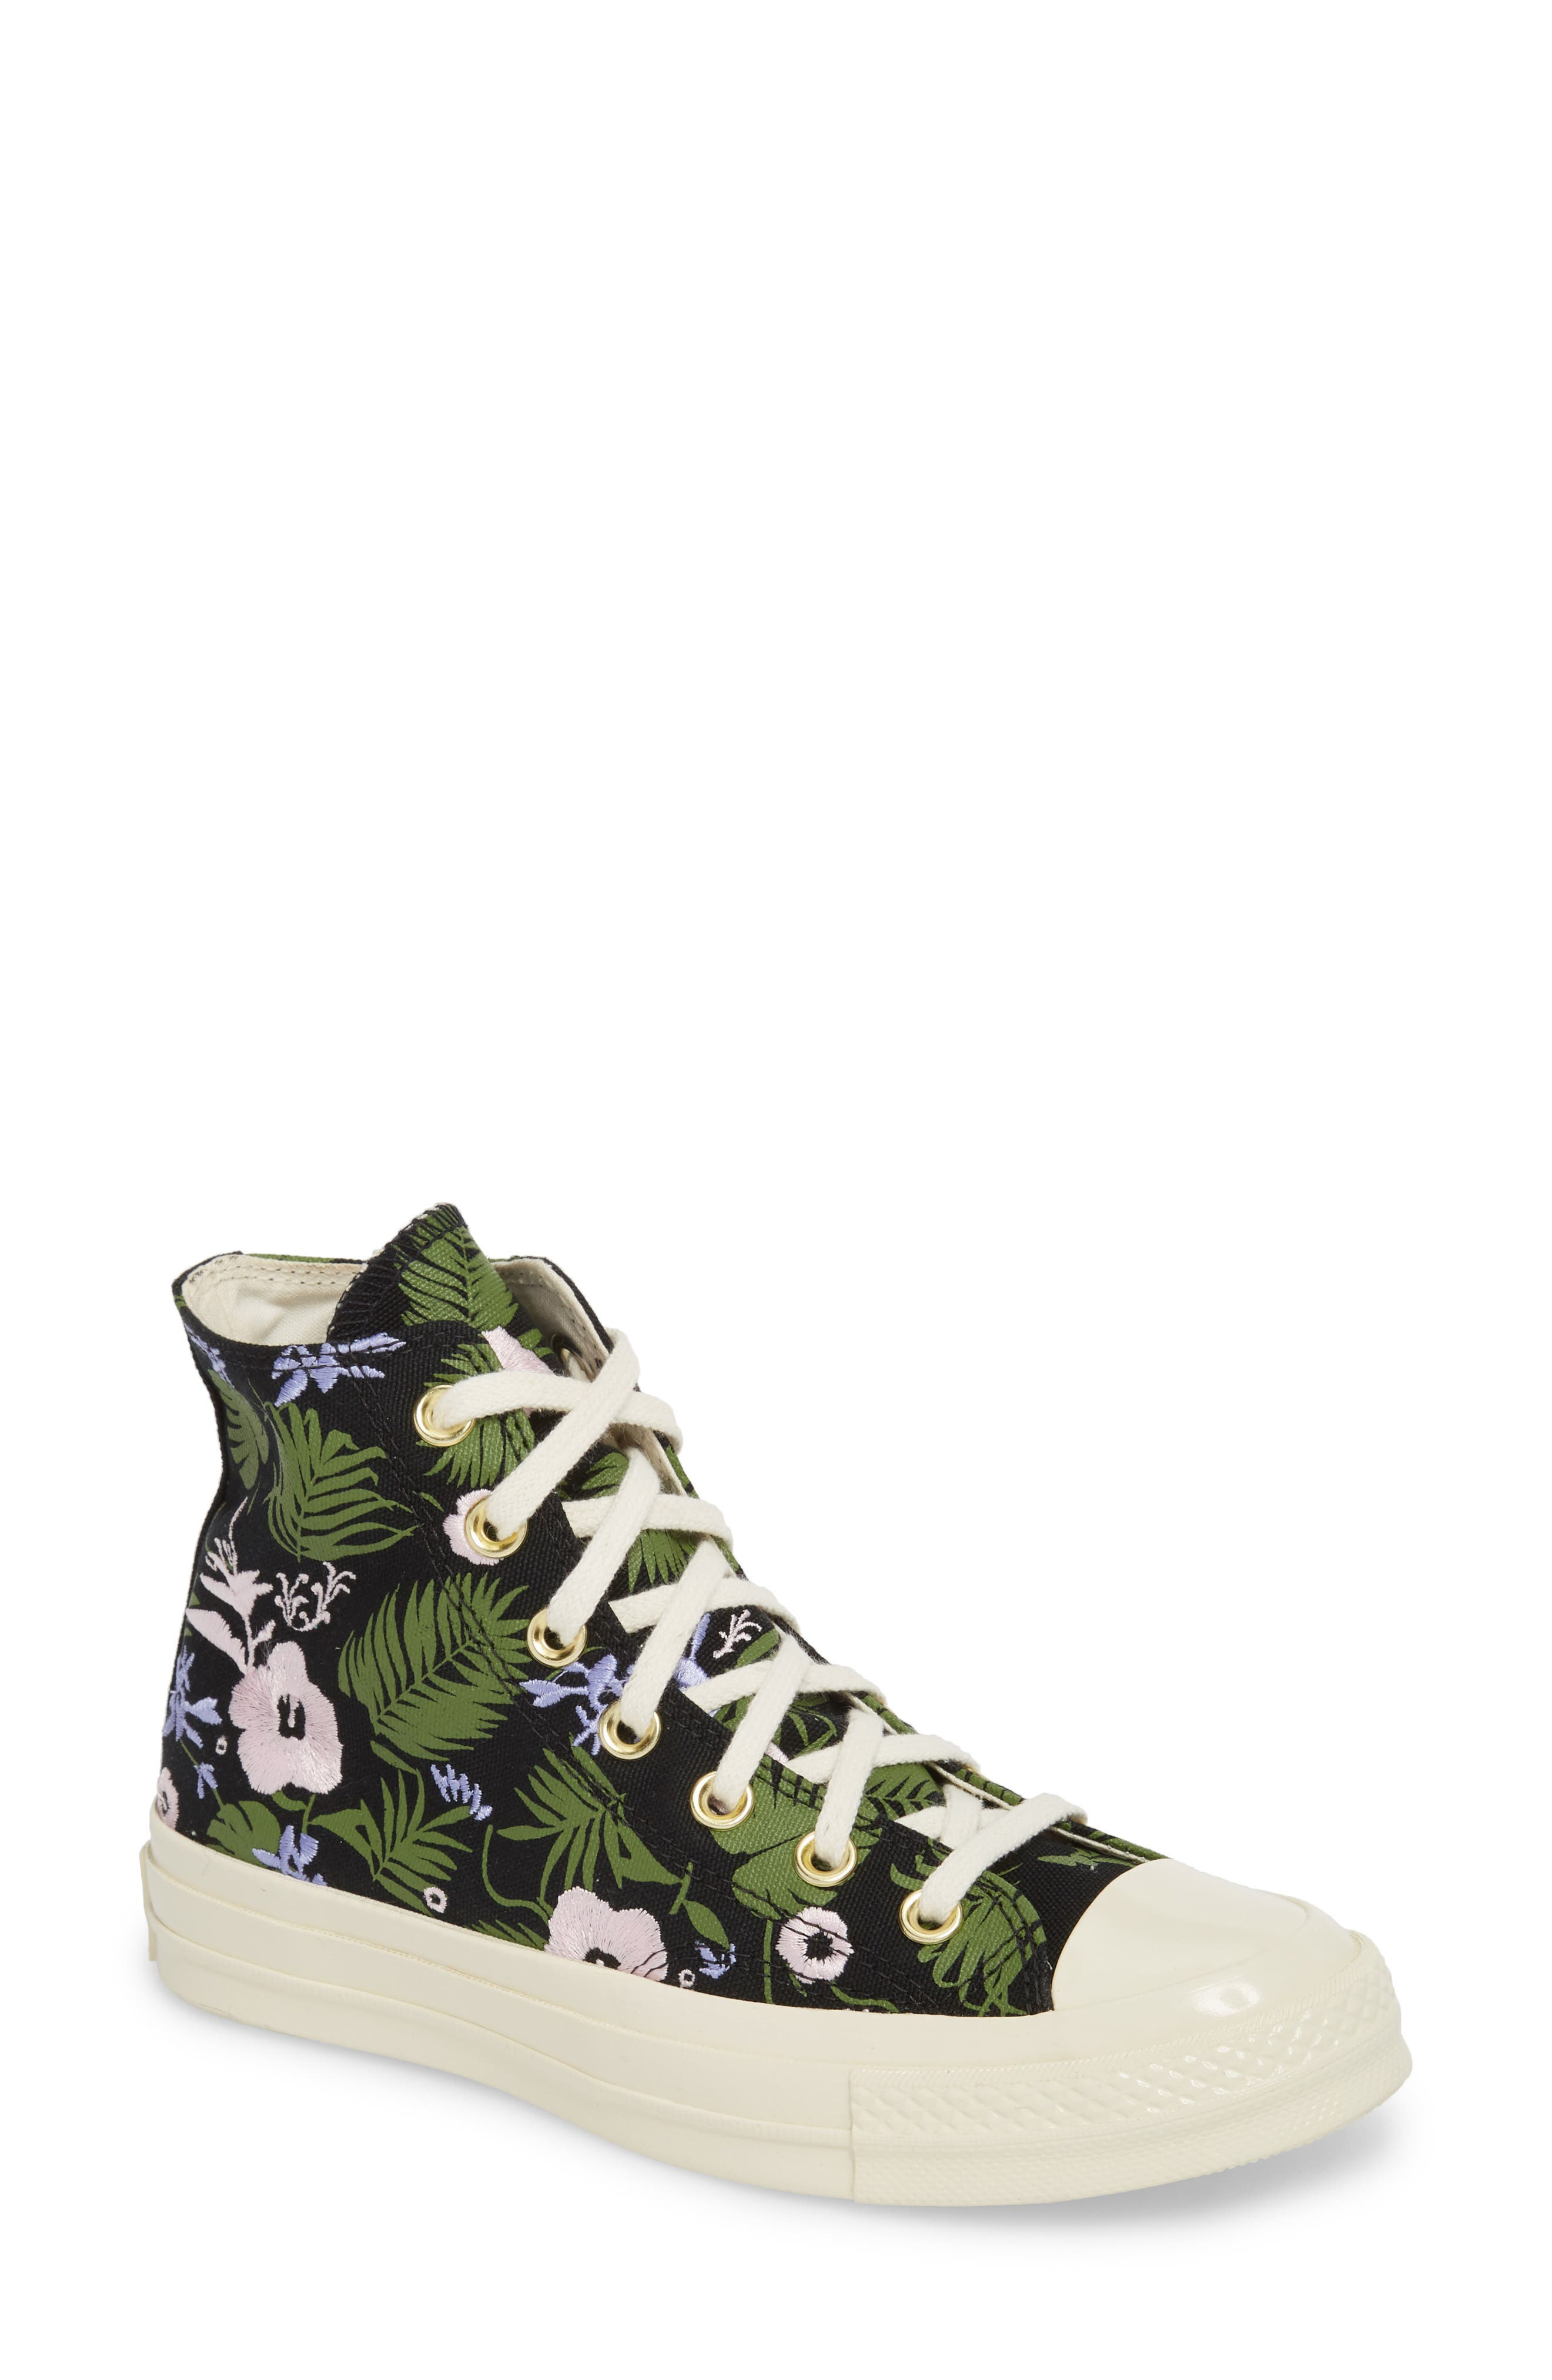 Chuck Taylor<sup>®</sup> All Star<sup>®</sup> 70 Palm Print High Top Sneaker,                         Main,                         color, Black/ Cherry